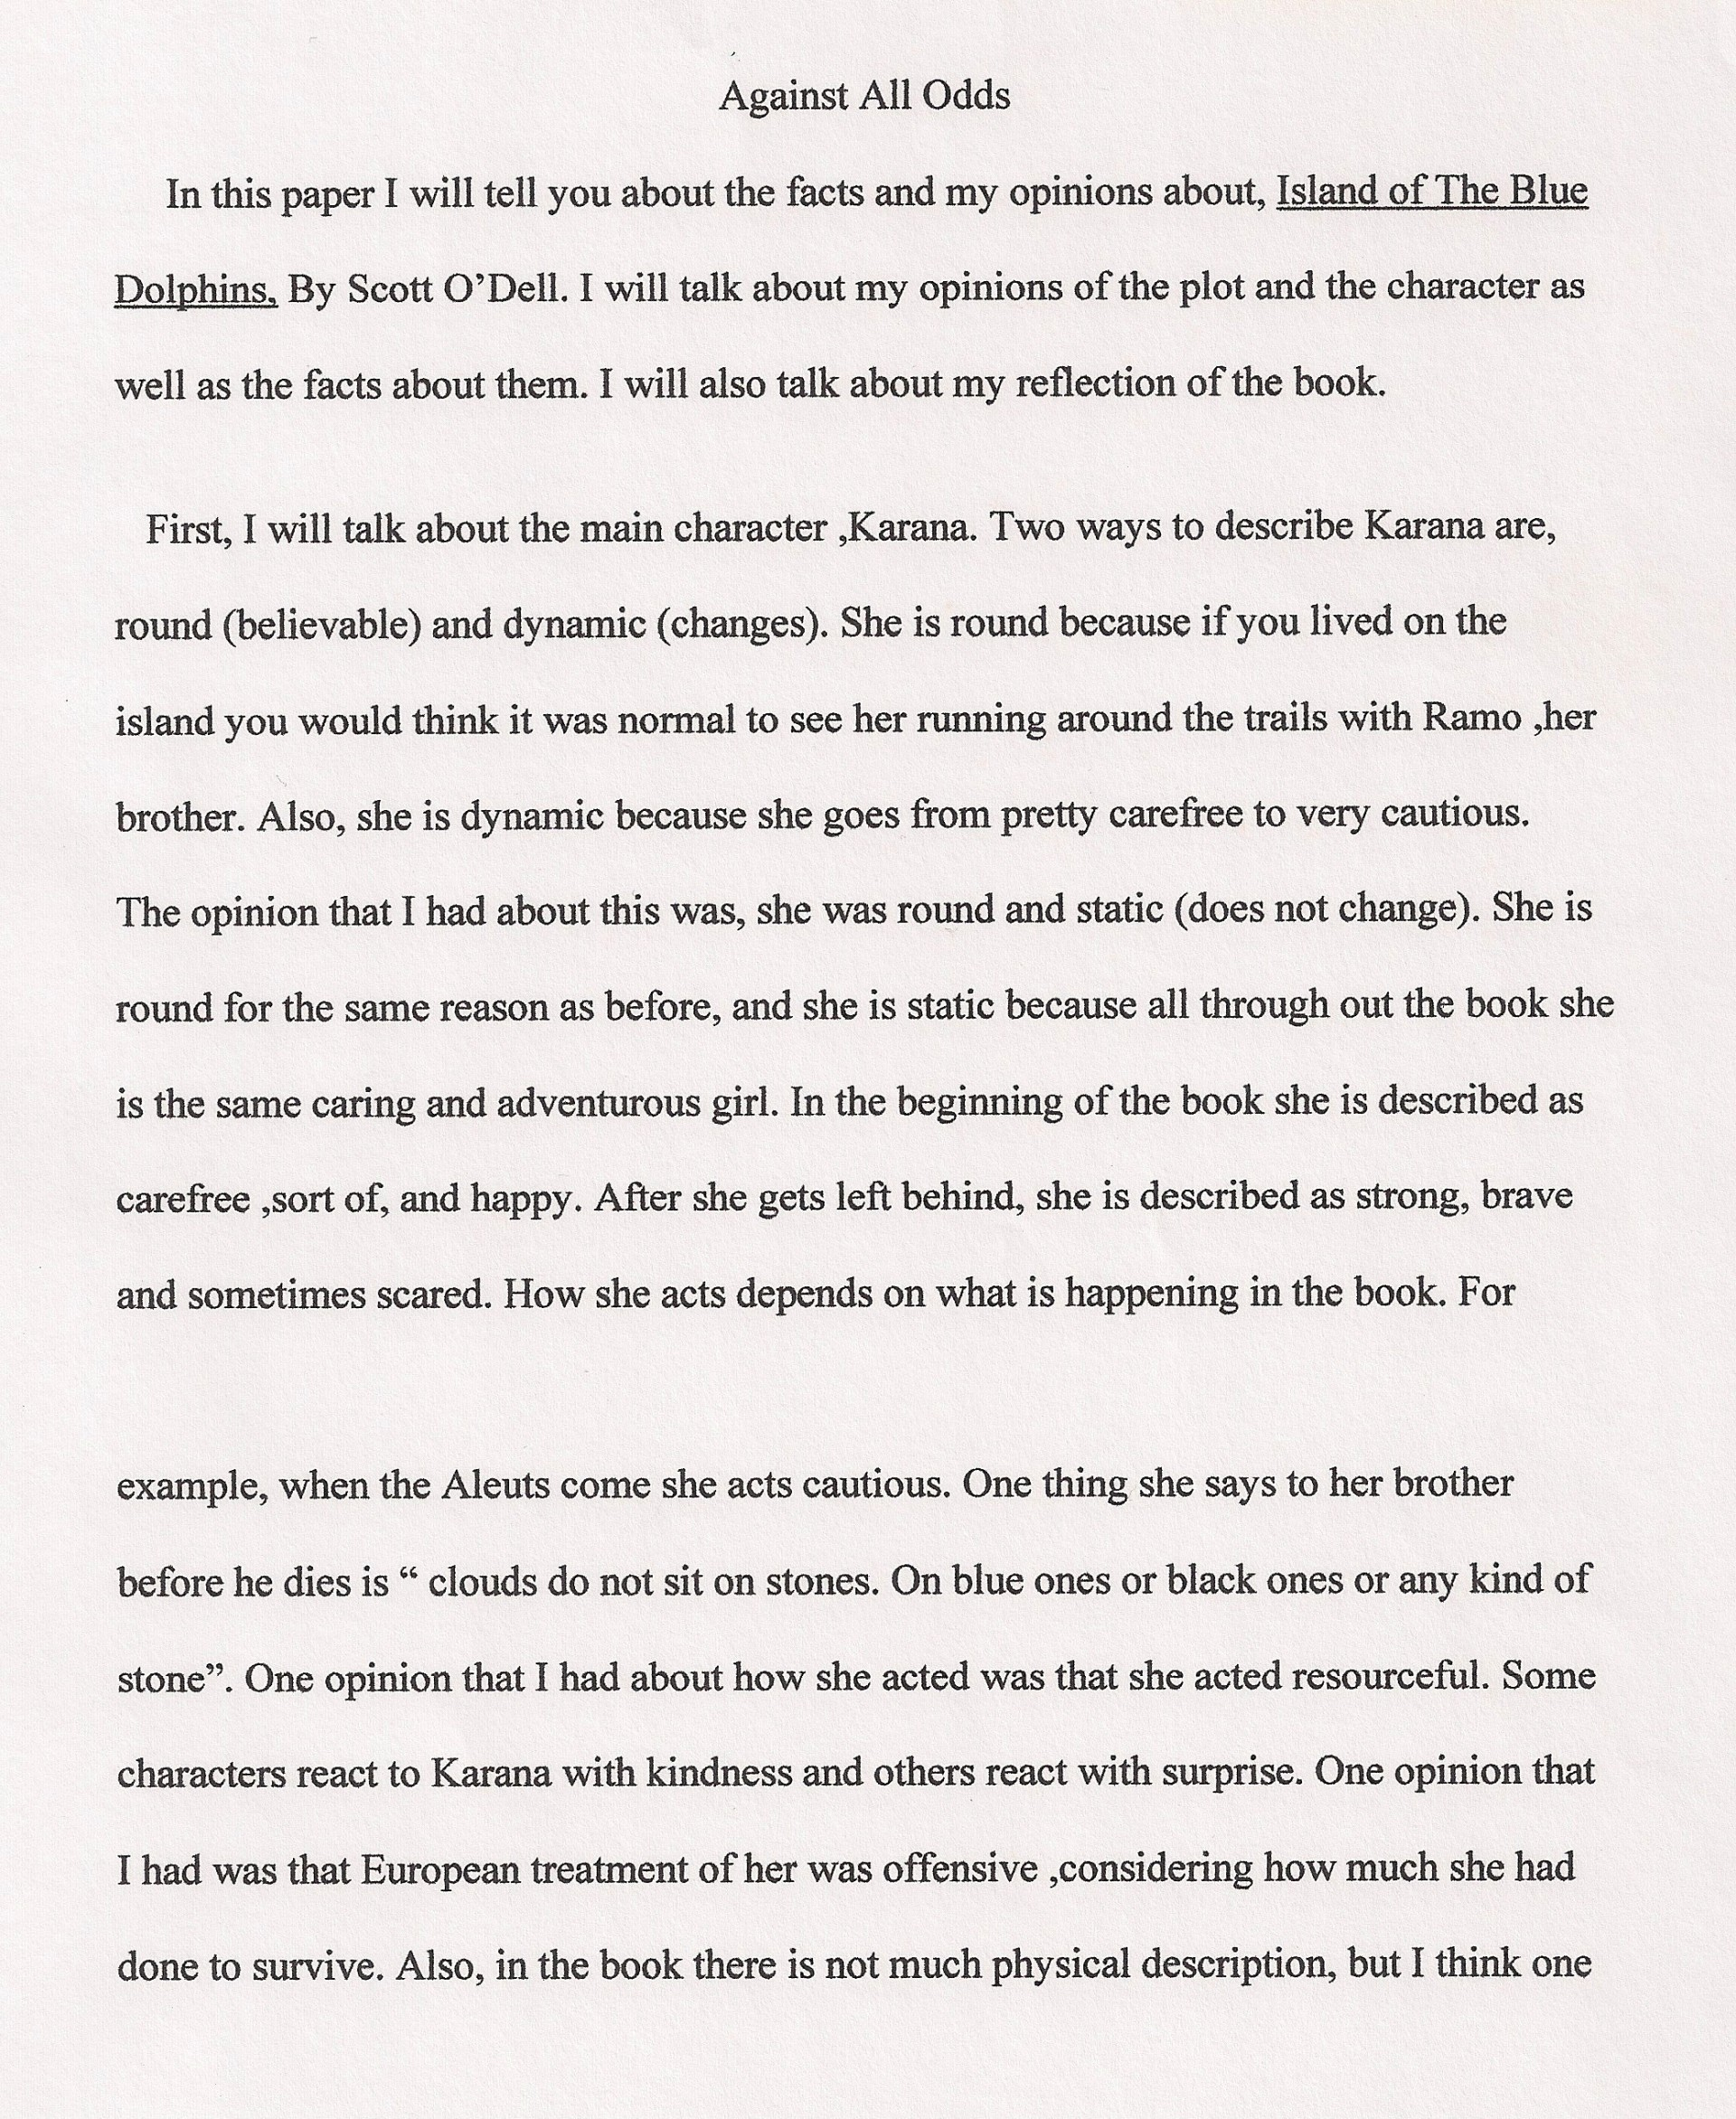 004 Essay Example 6th Grade Examples Against All Odds Fantastic Narrative Writing Literary 1920